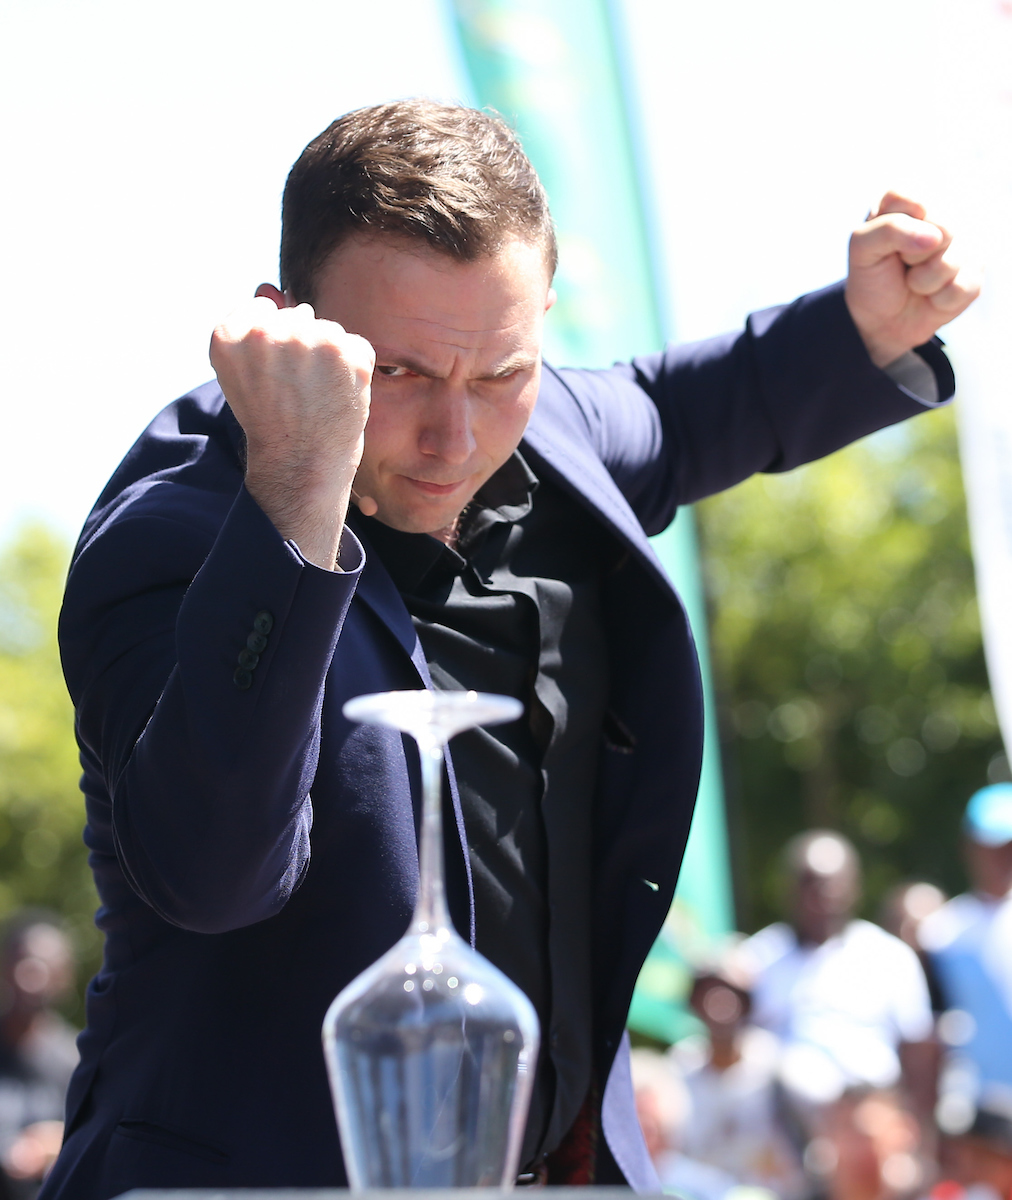 CAPE TOWN, SOUTH AFRICA - 7 December 2016, Larry Soffer performs his magic tricks during the Springbok 7's signing session at the V&A Waterfront ahead of the HSBC Cape Town 7's rugby tournament taking place at Cape Town Stadium on 10-11 December 2016.  (Photo by Roger Sedres/ImageSA)